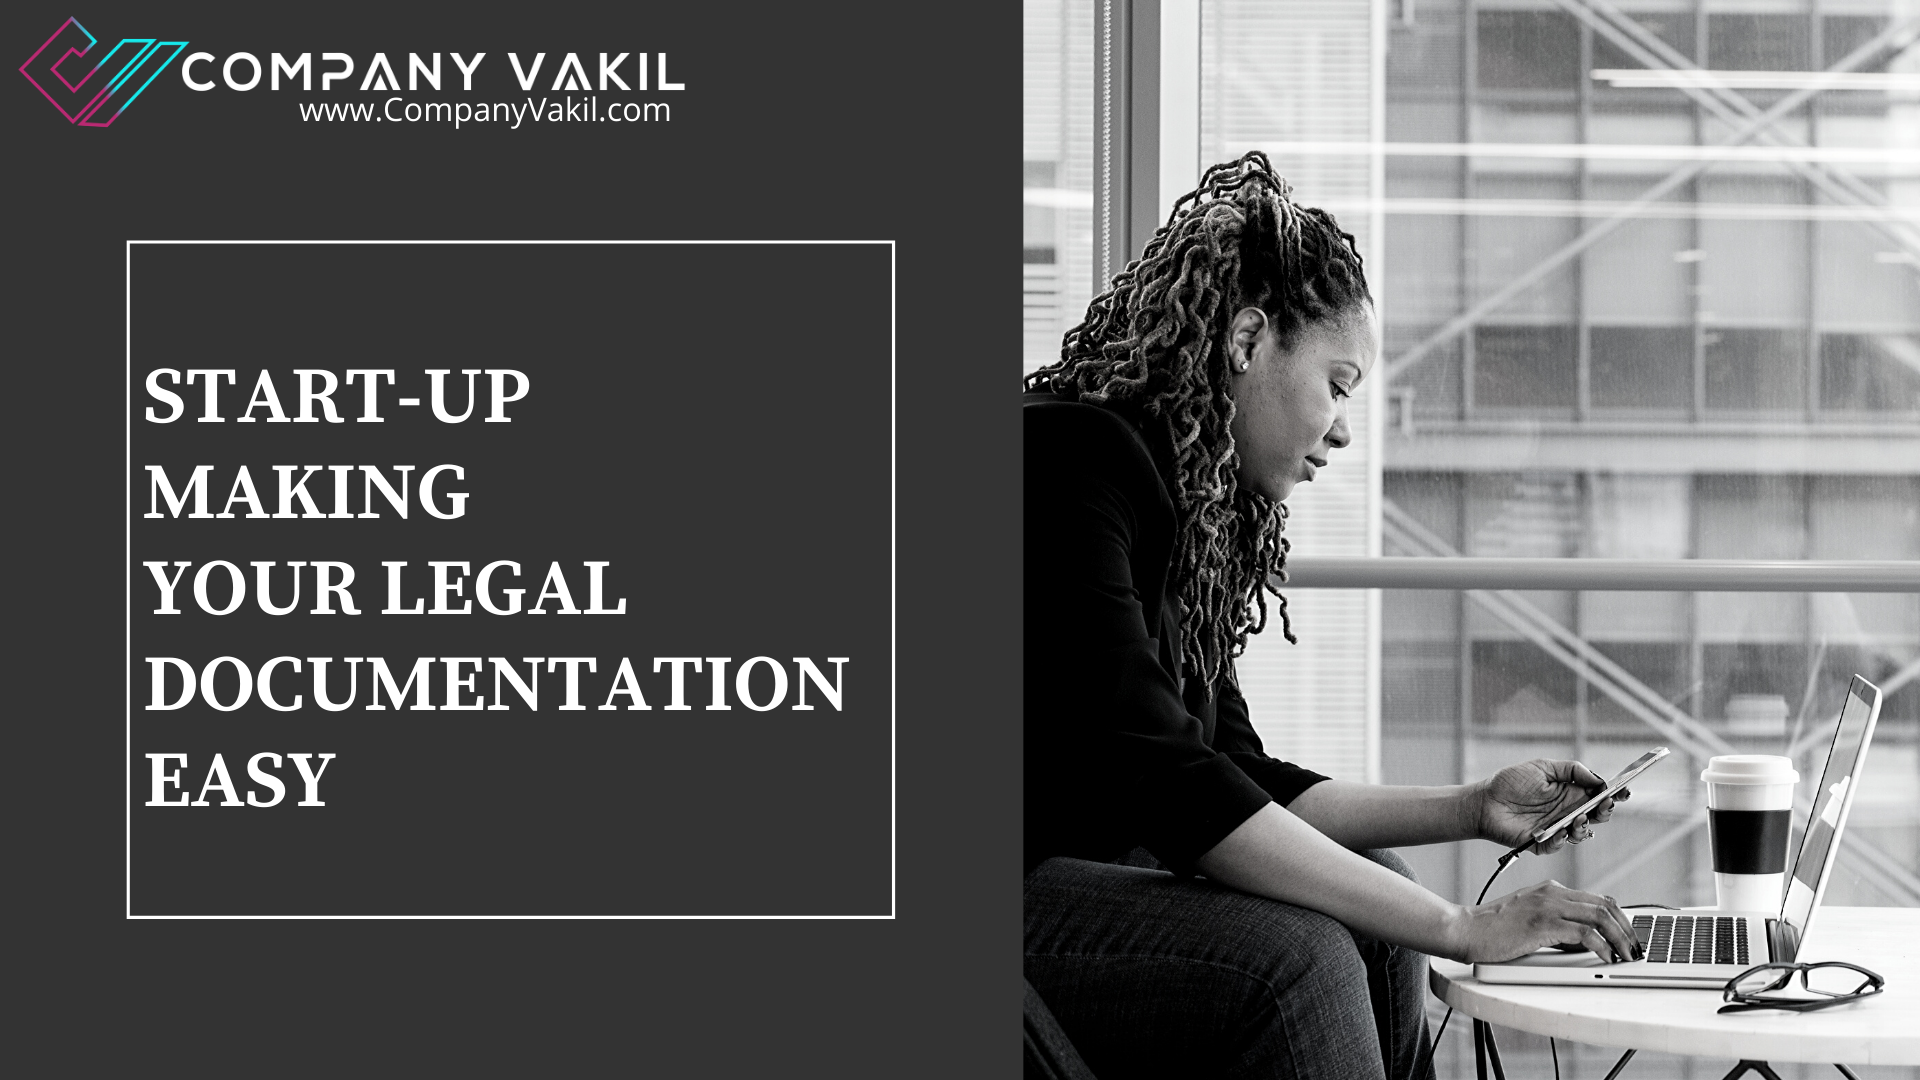 How Terms Of Service, Founder\'s Agreement & Employment Contracts Can Help Businesses - Company Vakil